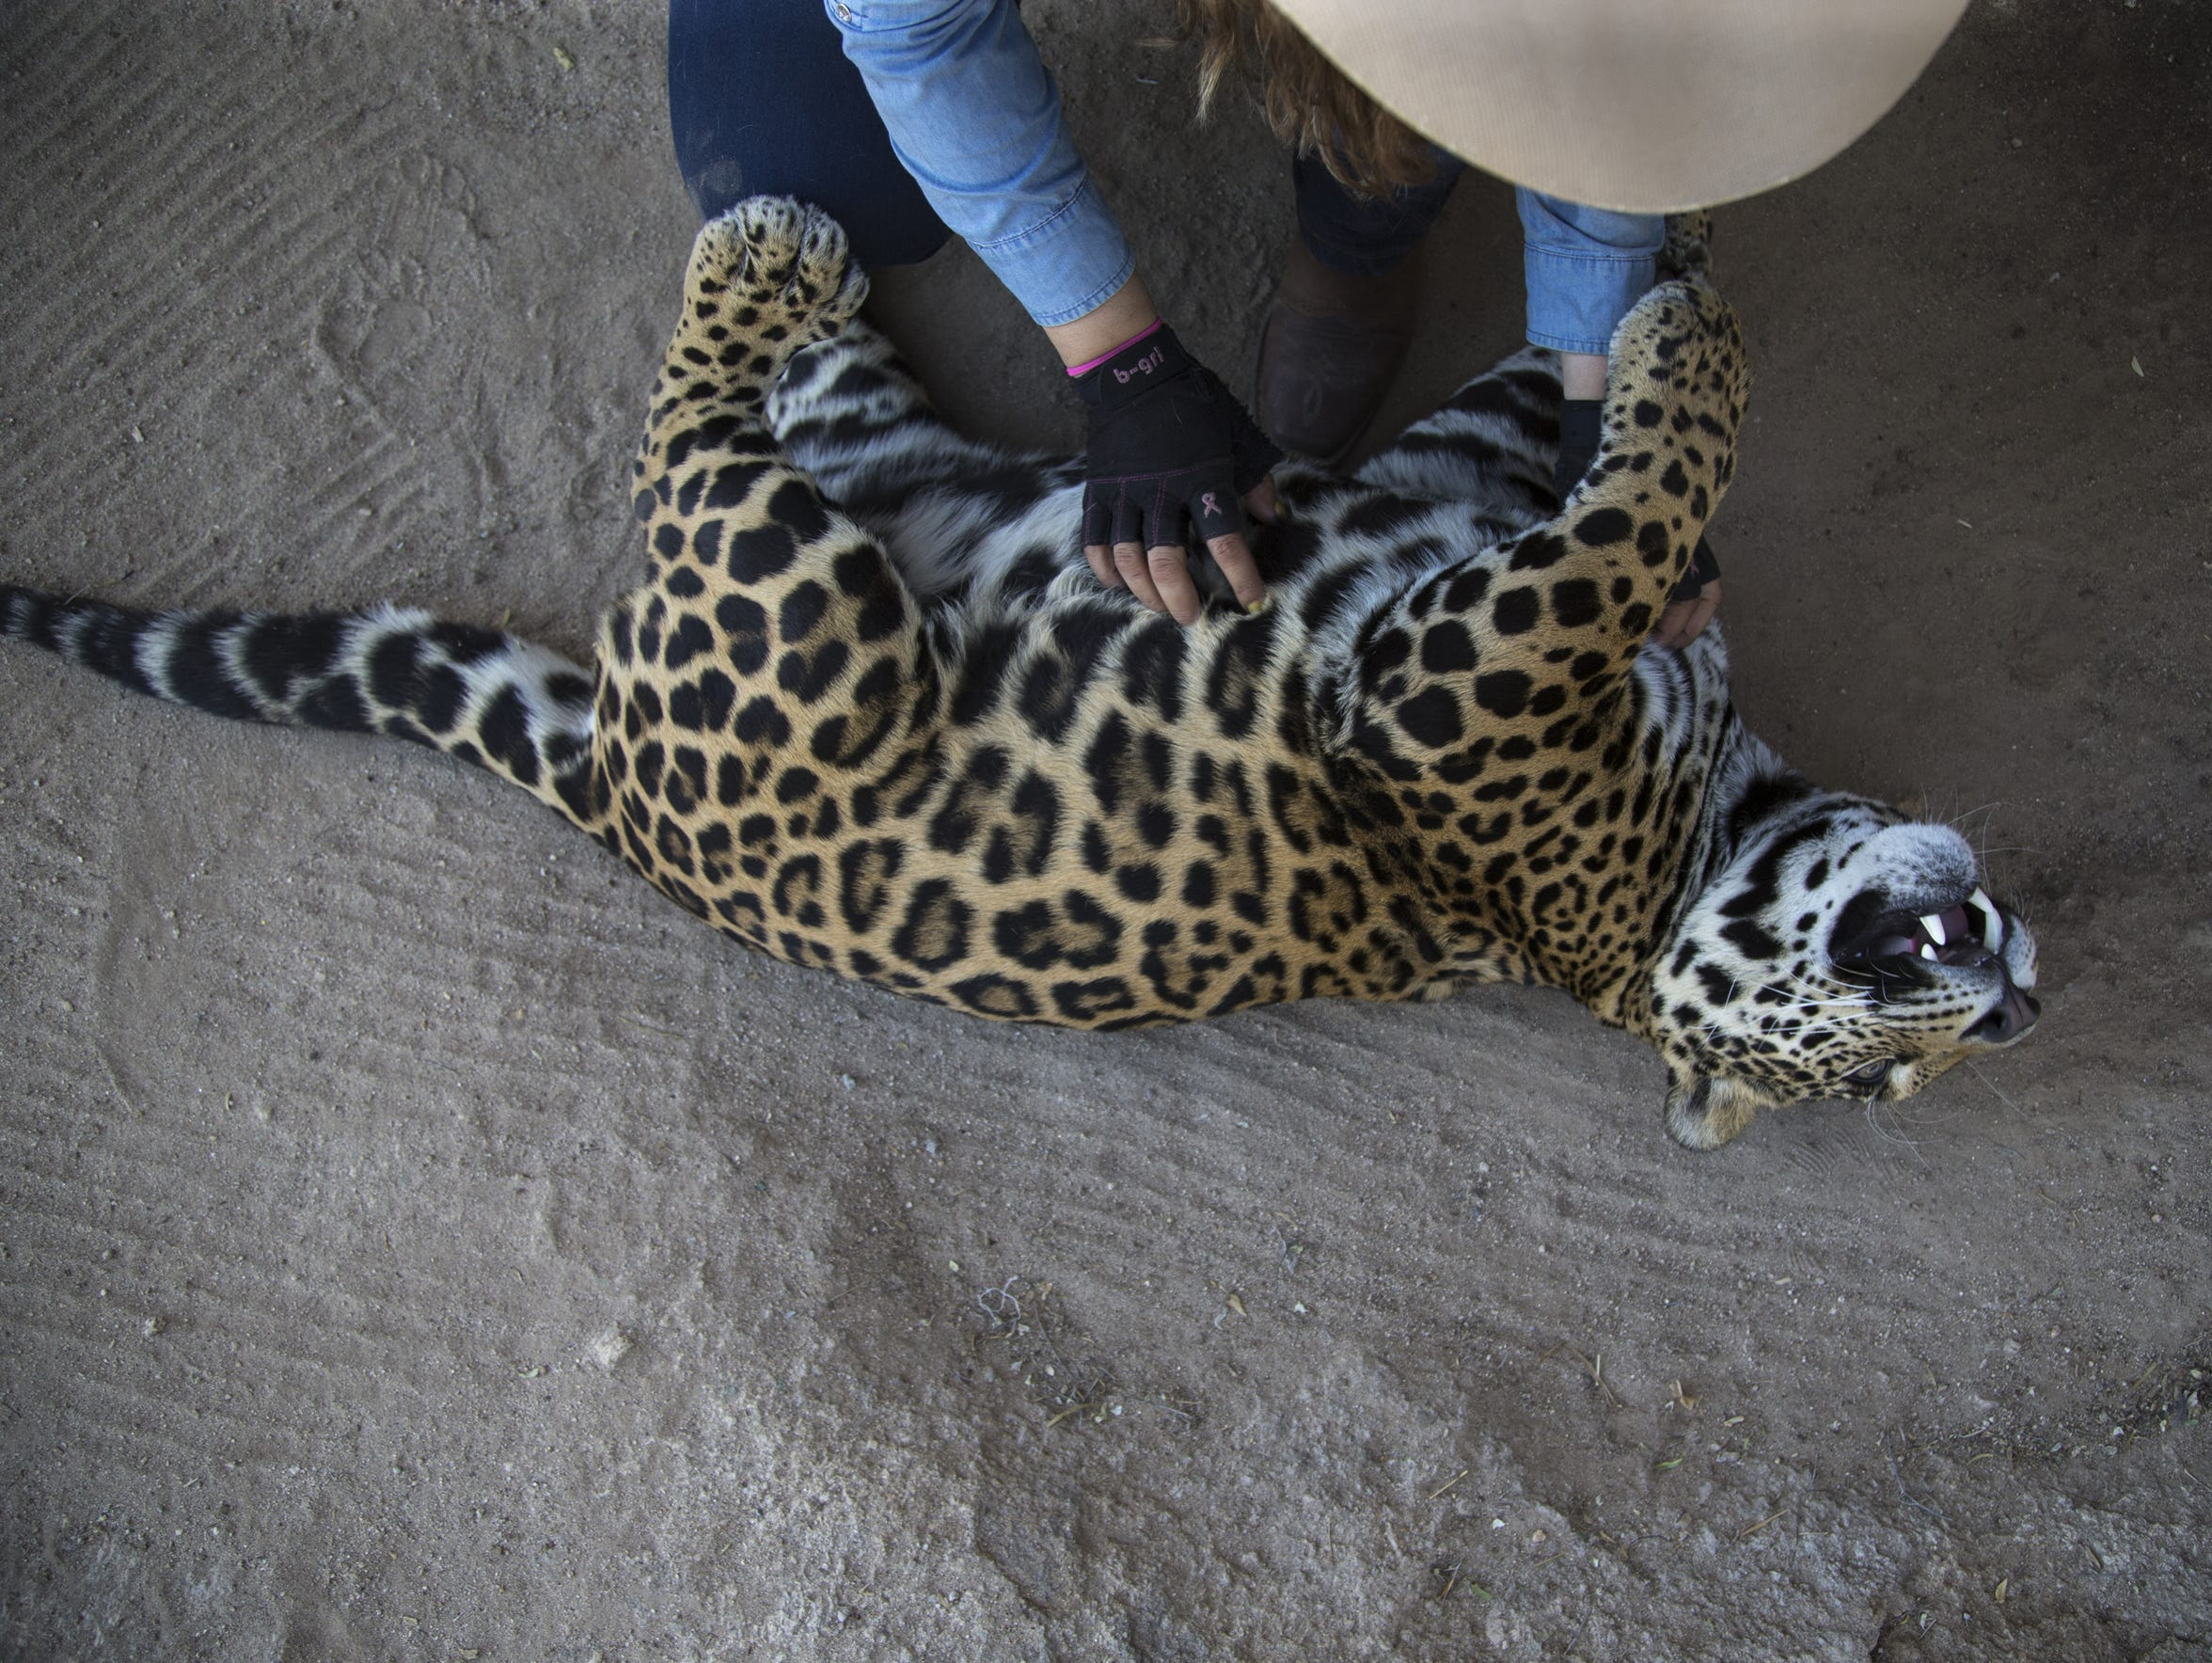 Shandira Astrid scratches Baawe, a 1-year-old male